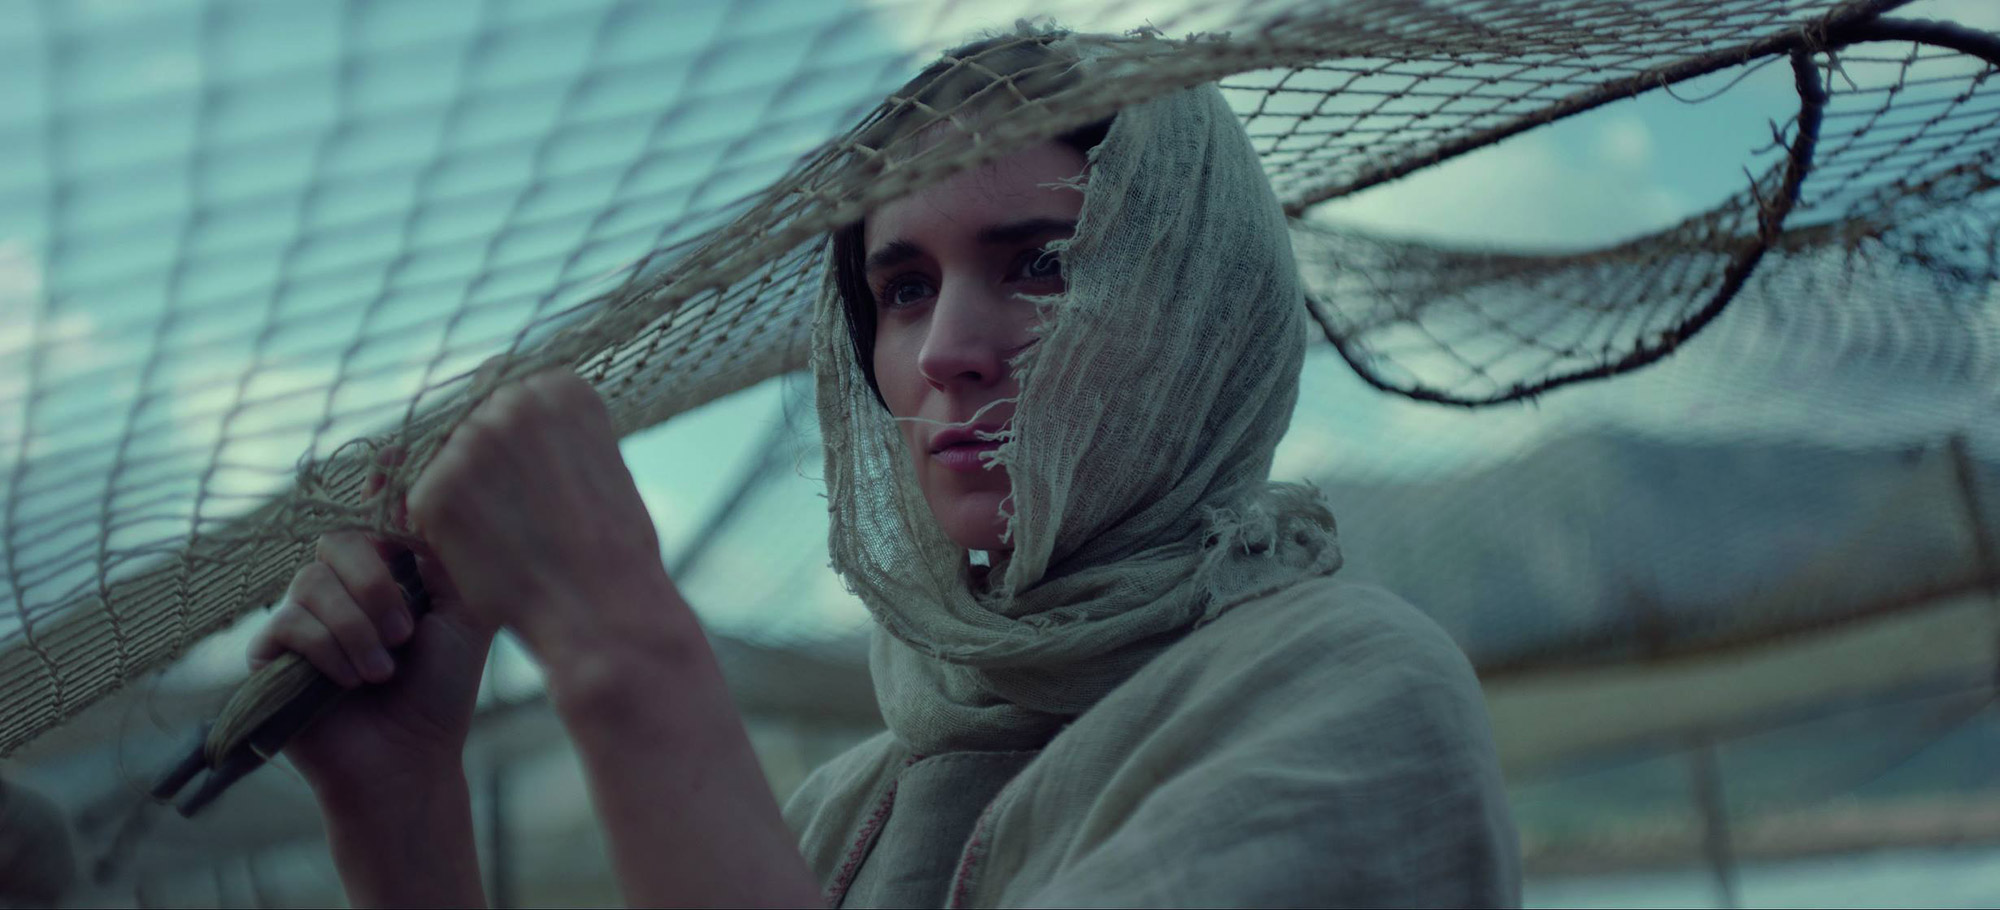 Rooney Mara in Mary MagdaleneCredit: Universal Pictures